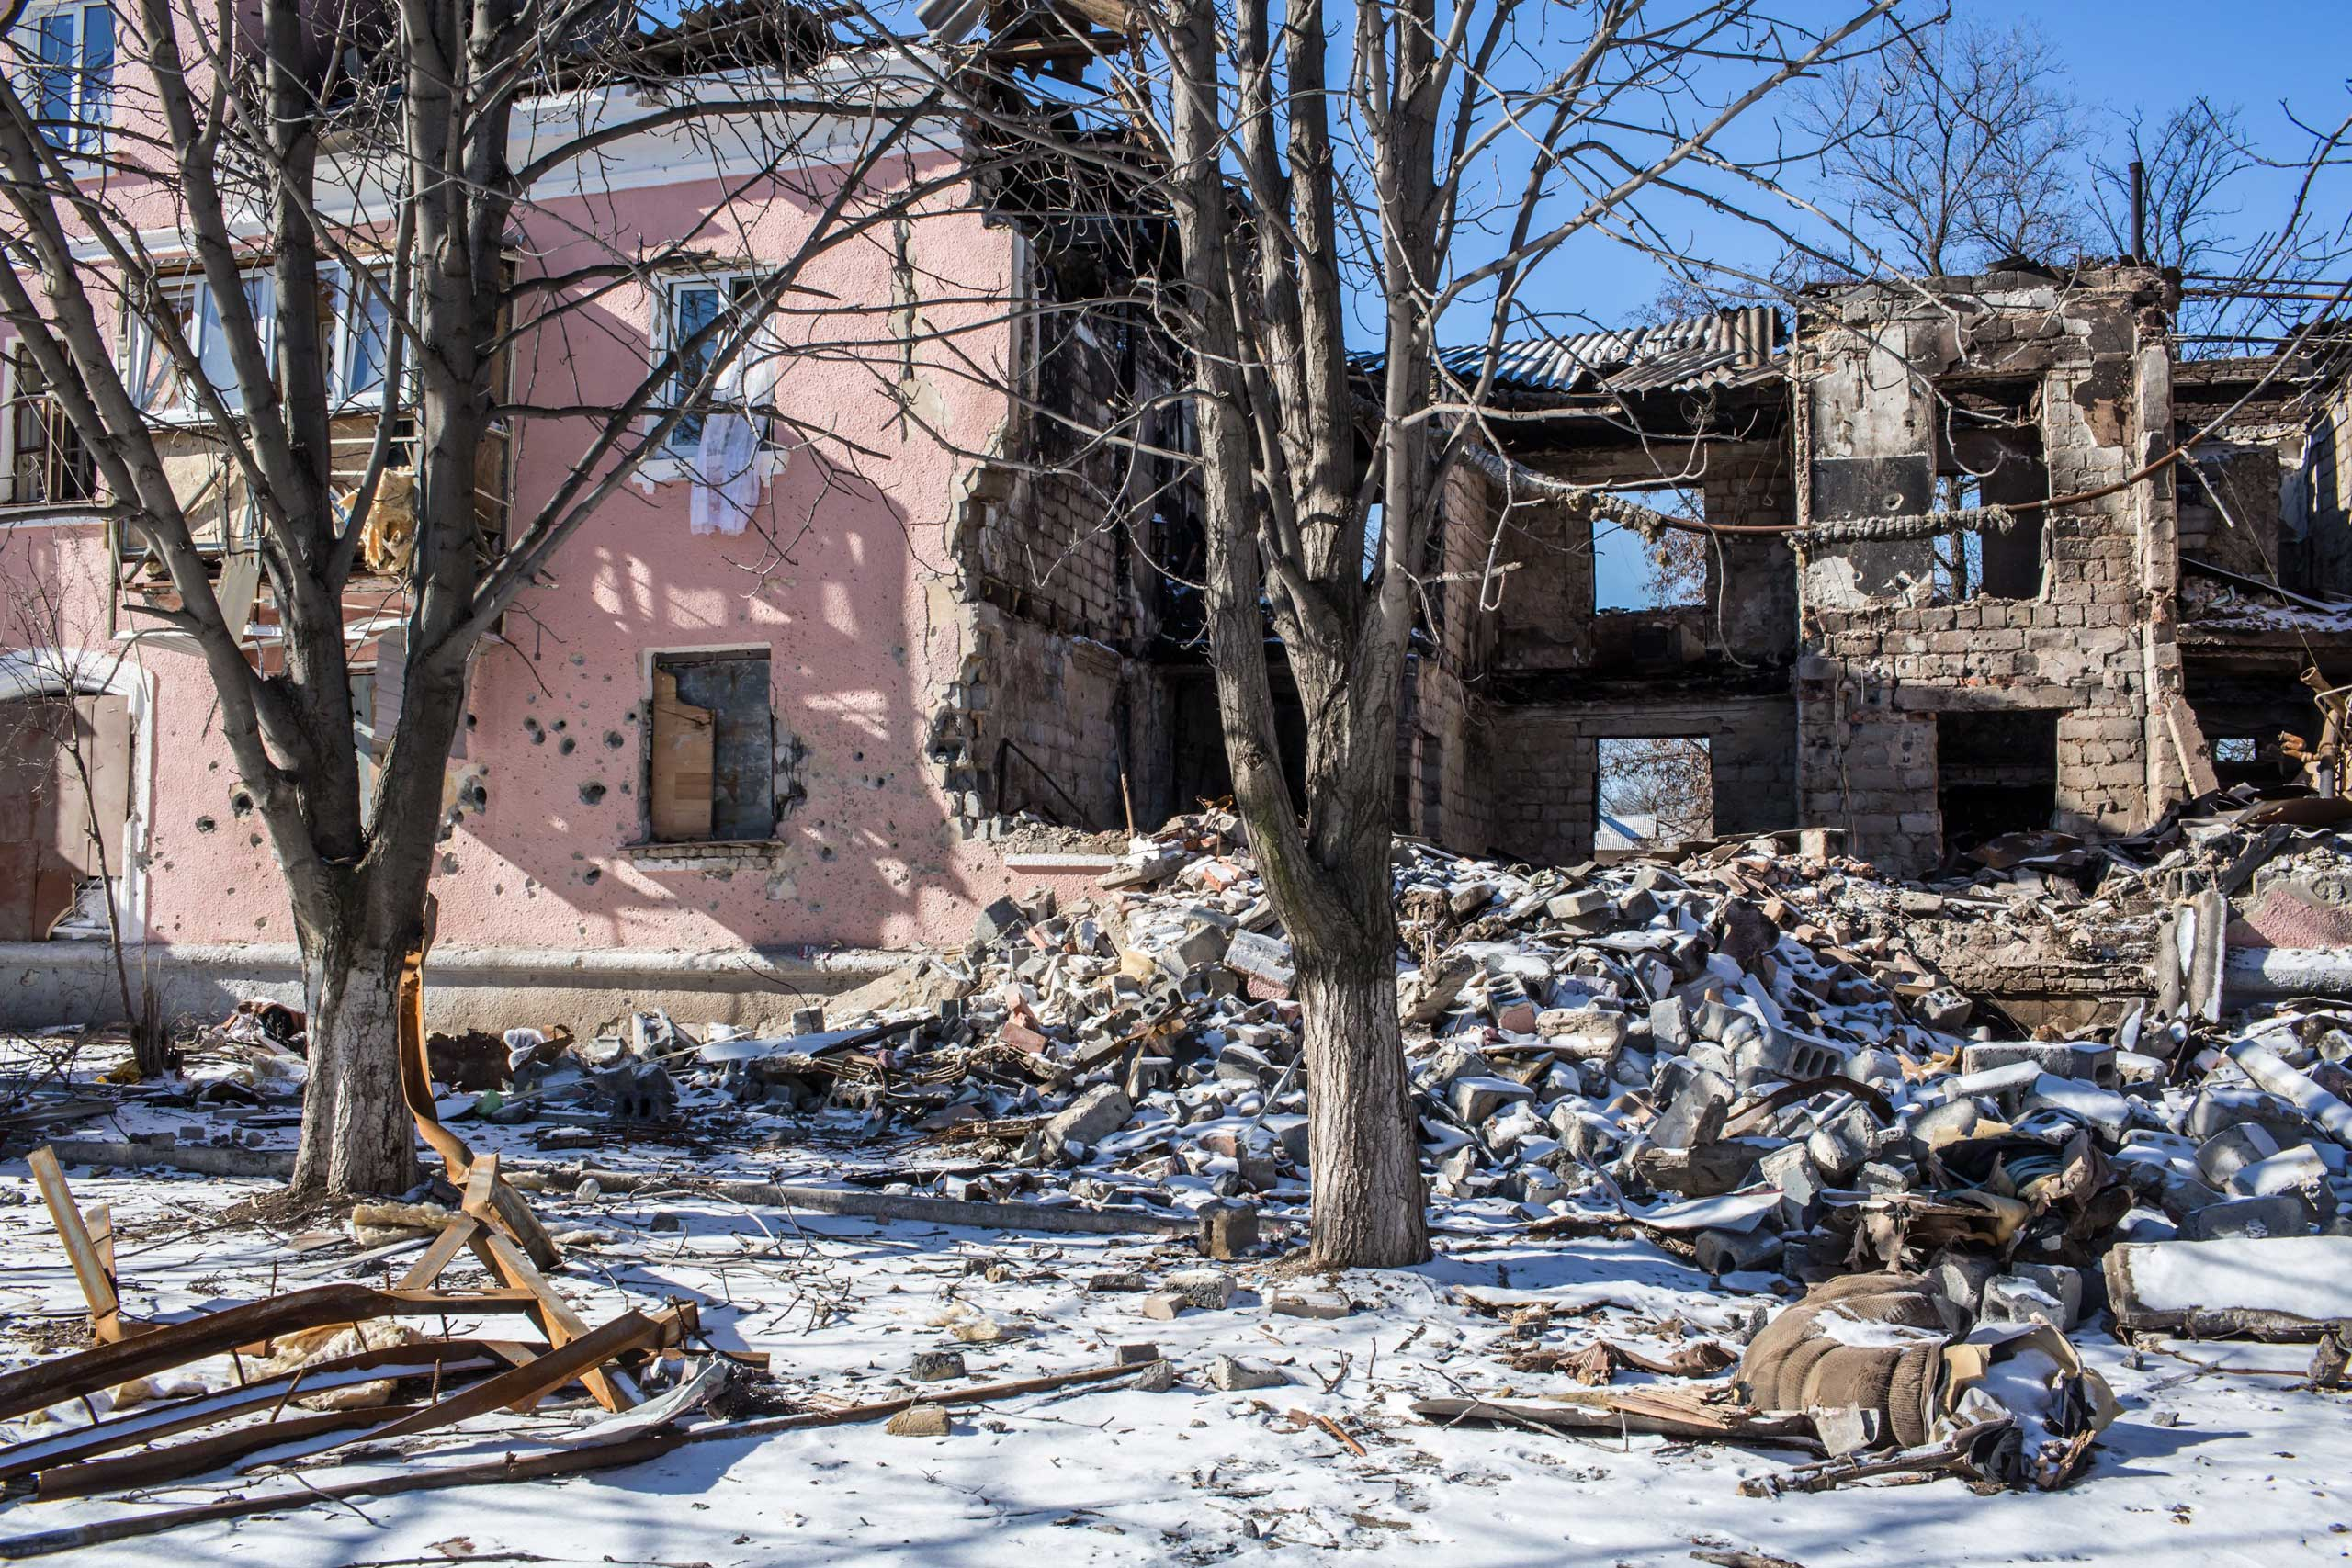 A building lies in ruins from being hit by a shell on Feb. 17, 2015 in Mironovka, near Debaltseve.